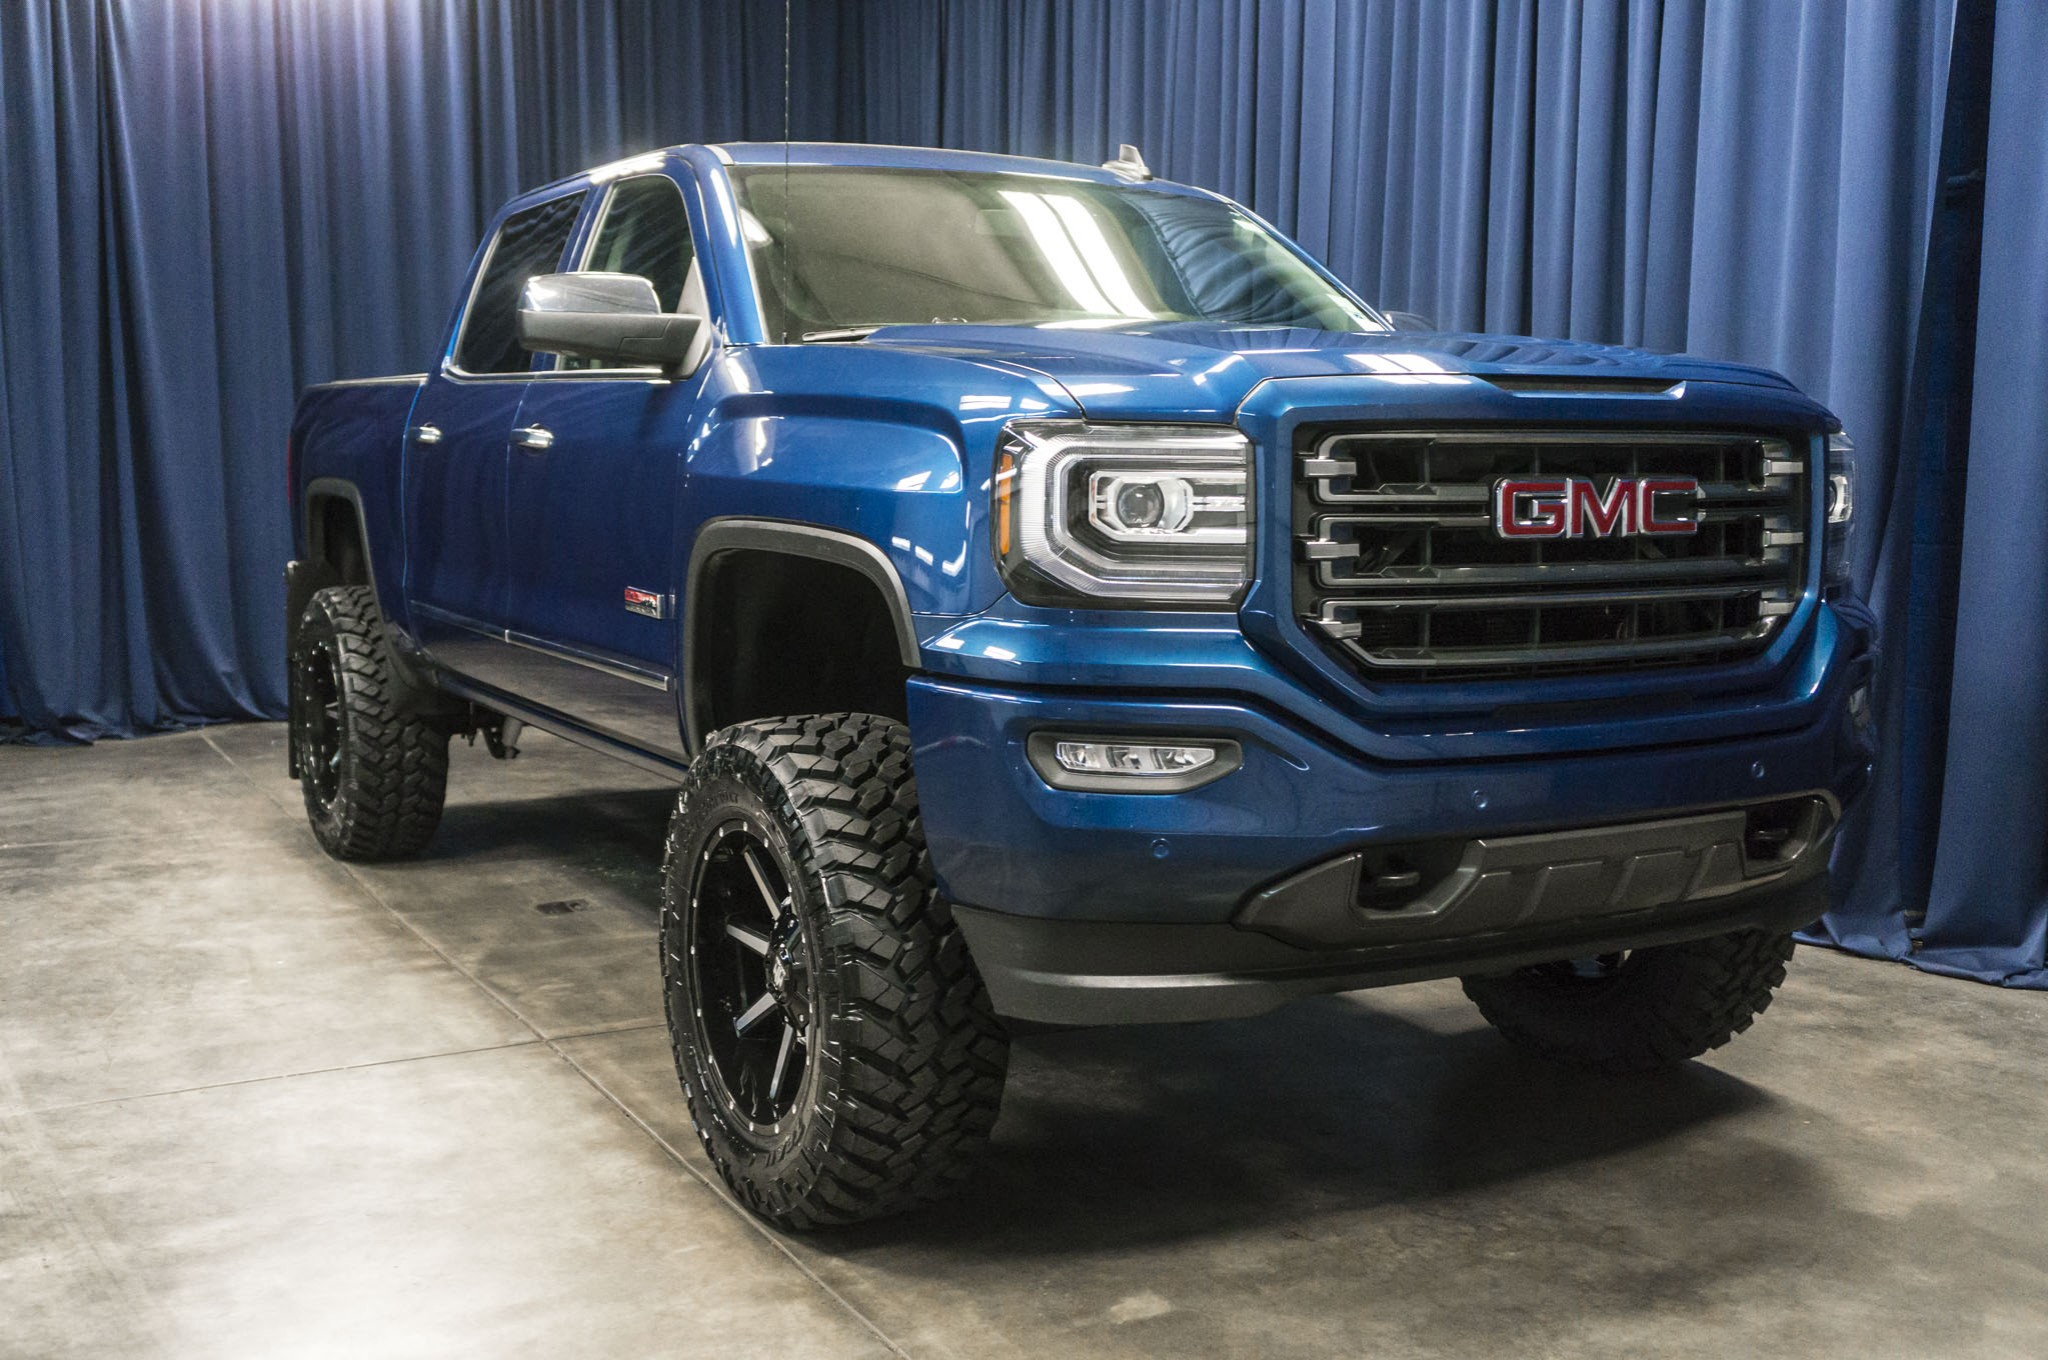 used lifted 2016 gmc sierra 1500 all terrain 4x4 truck for sale 41628. Black Bedroom Furniture Sets. Home Design Ideas